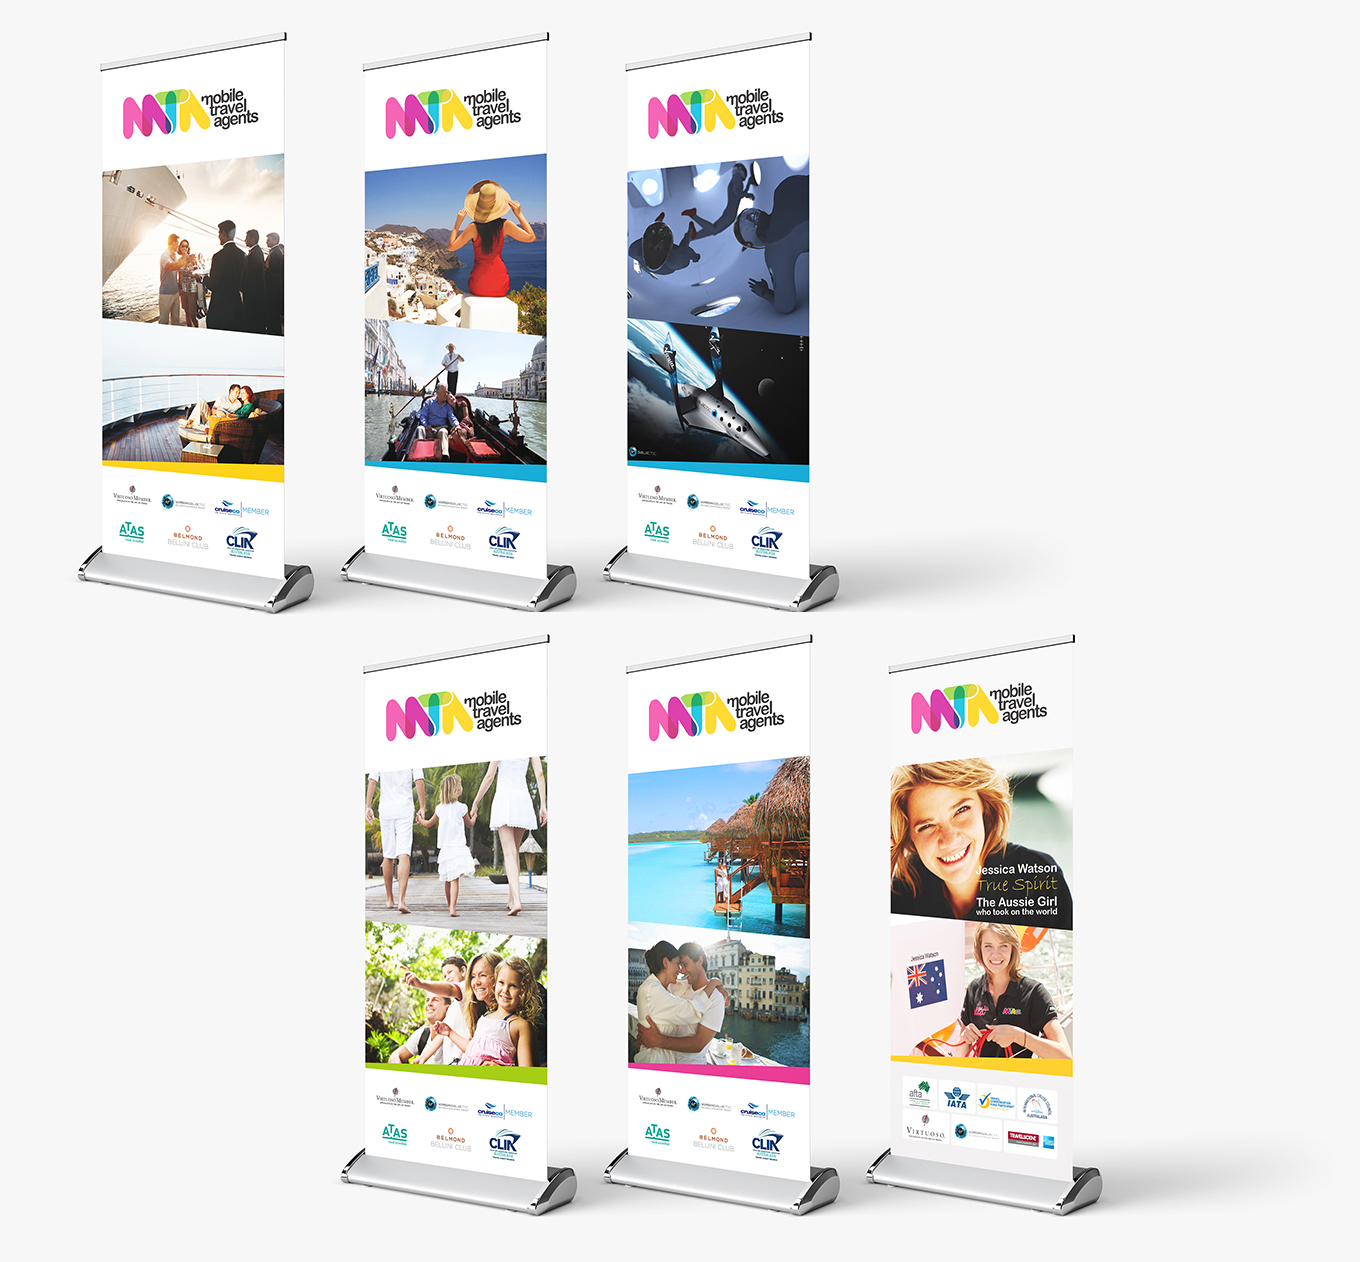 MTA - Mobile Travel Agents premium pull up banners design and print by FOX DESIGN